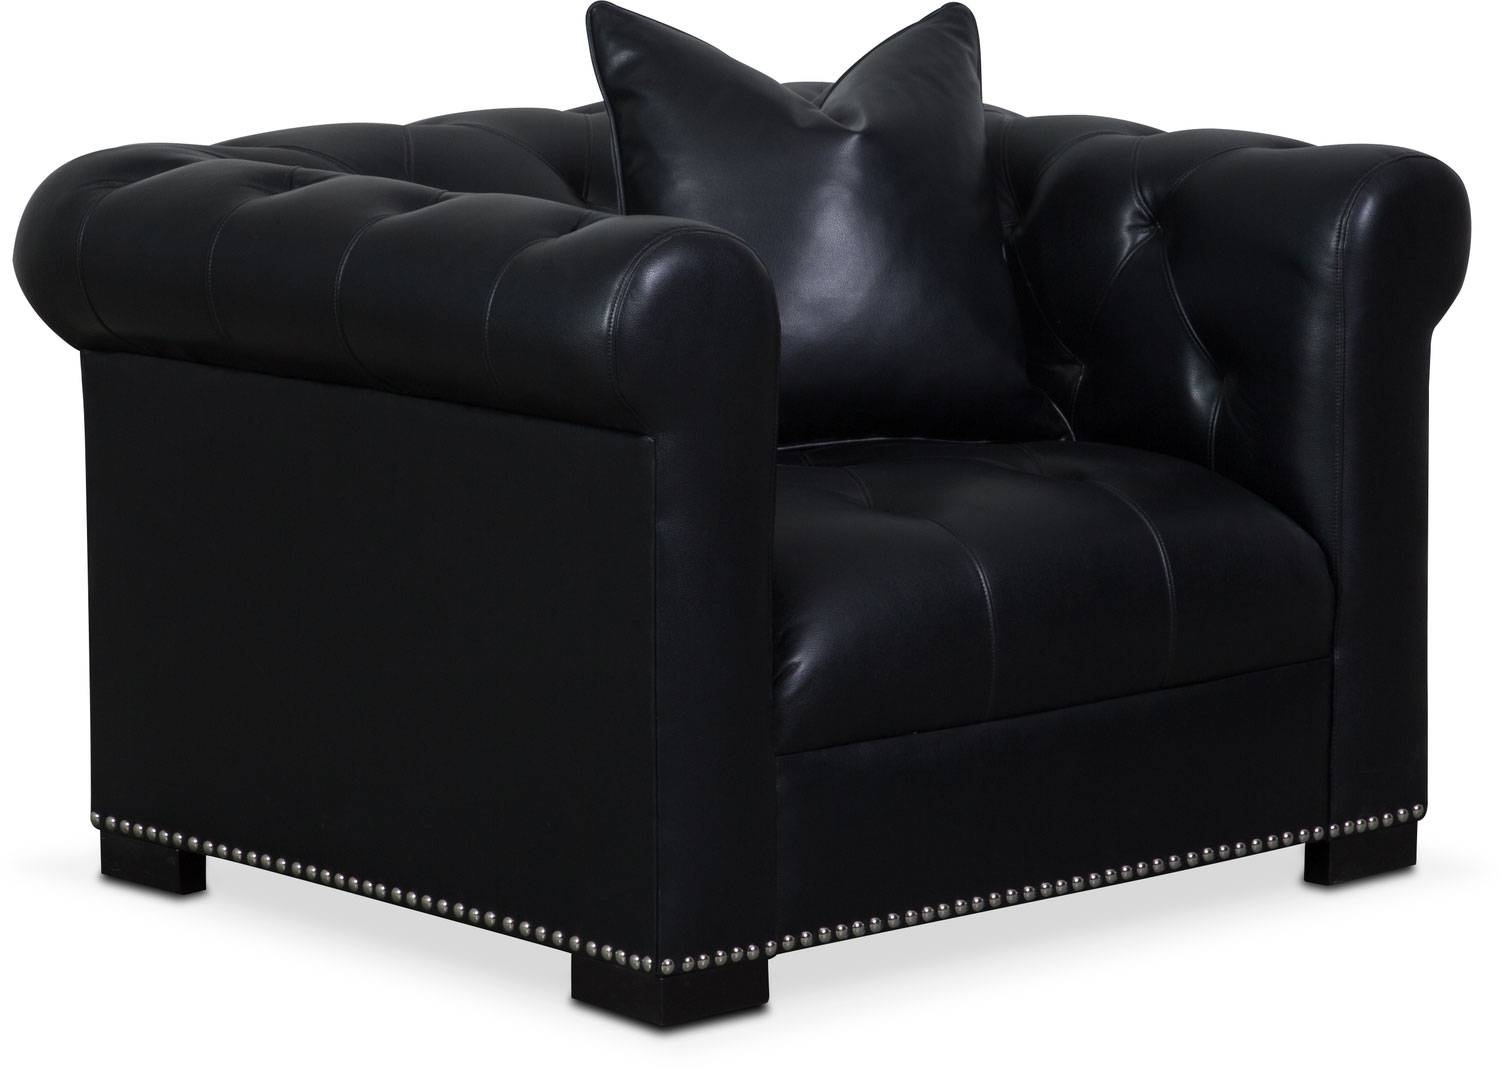 Couture Sofa, Chair And Swivel Chair Set – Black | Value City For Swivel Sofa Chairs (View 10 of 30)